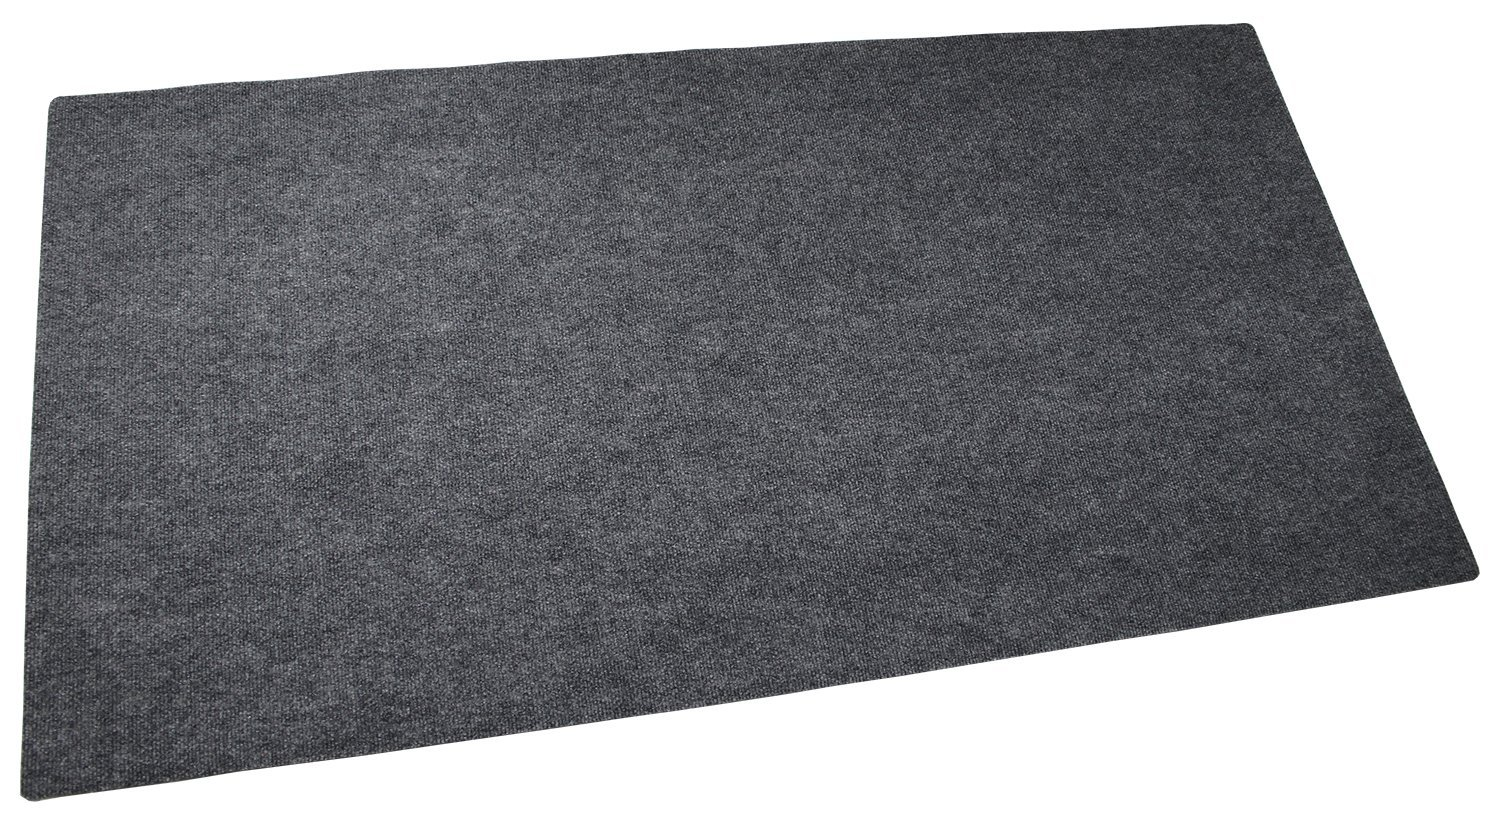 Drymate Gas Grill Mat, Premium BBQ Grill Mat - 30'' x 58'' - Size Extra Large Grill Pad - Contains Grill Splatter And (Protects Surface) by Drymate